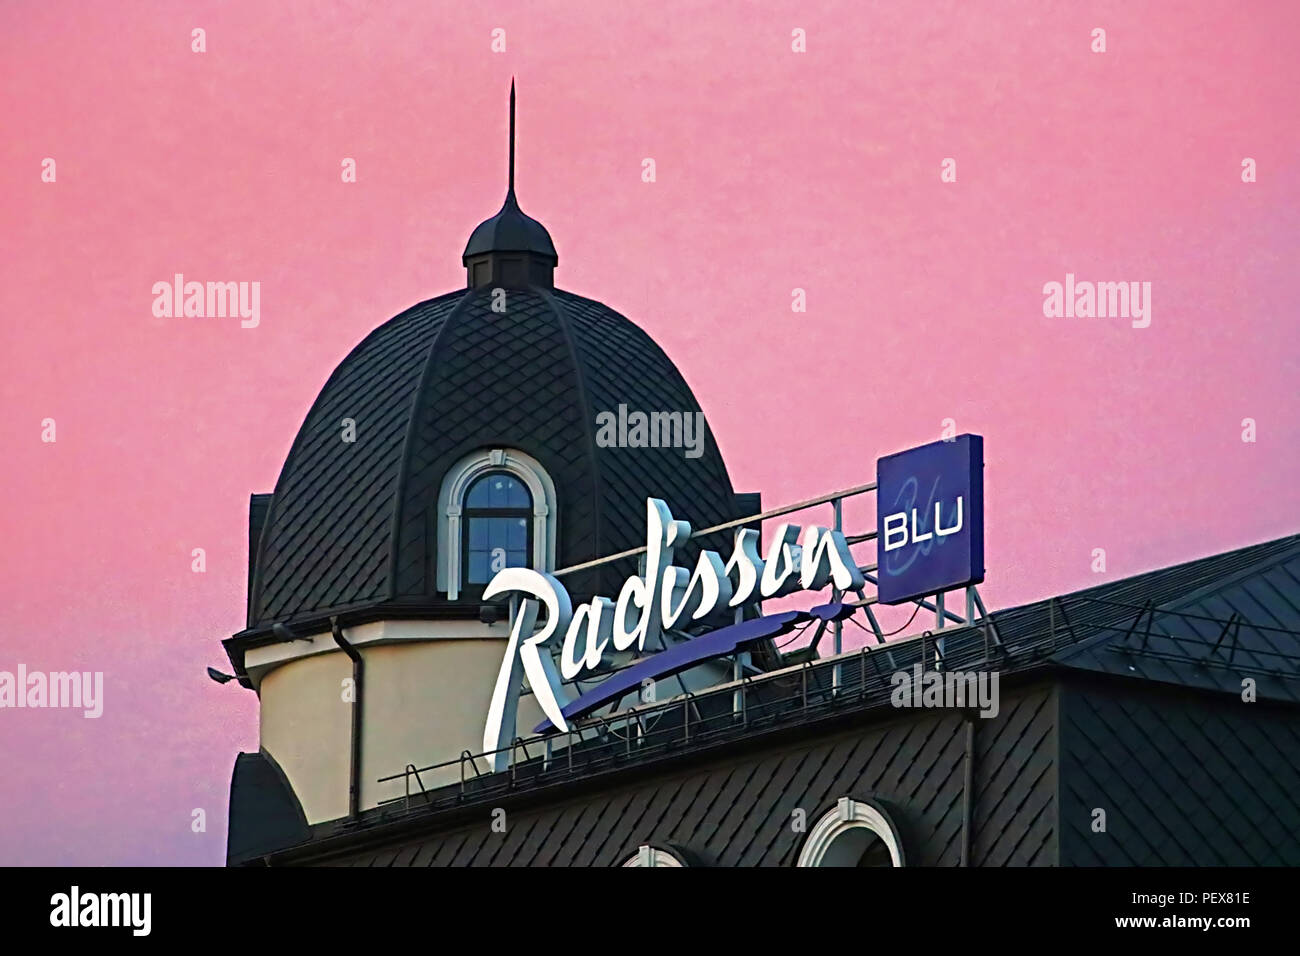 KYIV, UKRAINE - AUGUST 4, 2018: Radisson Blu Hotel Kyiv Podil is located in the historic district of the city - Podil - Stock Image